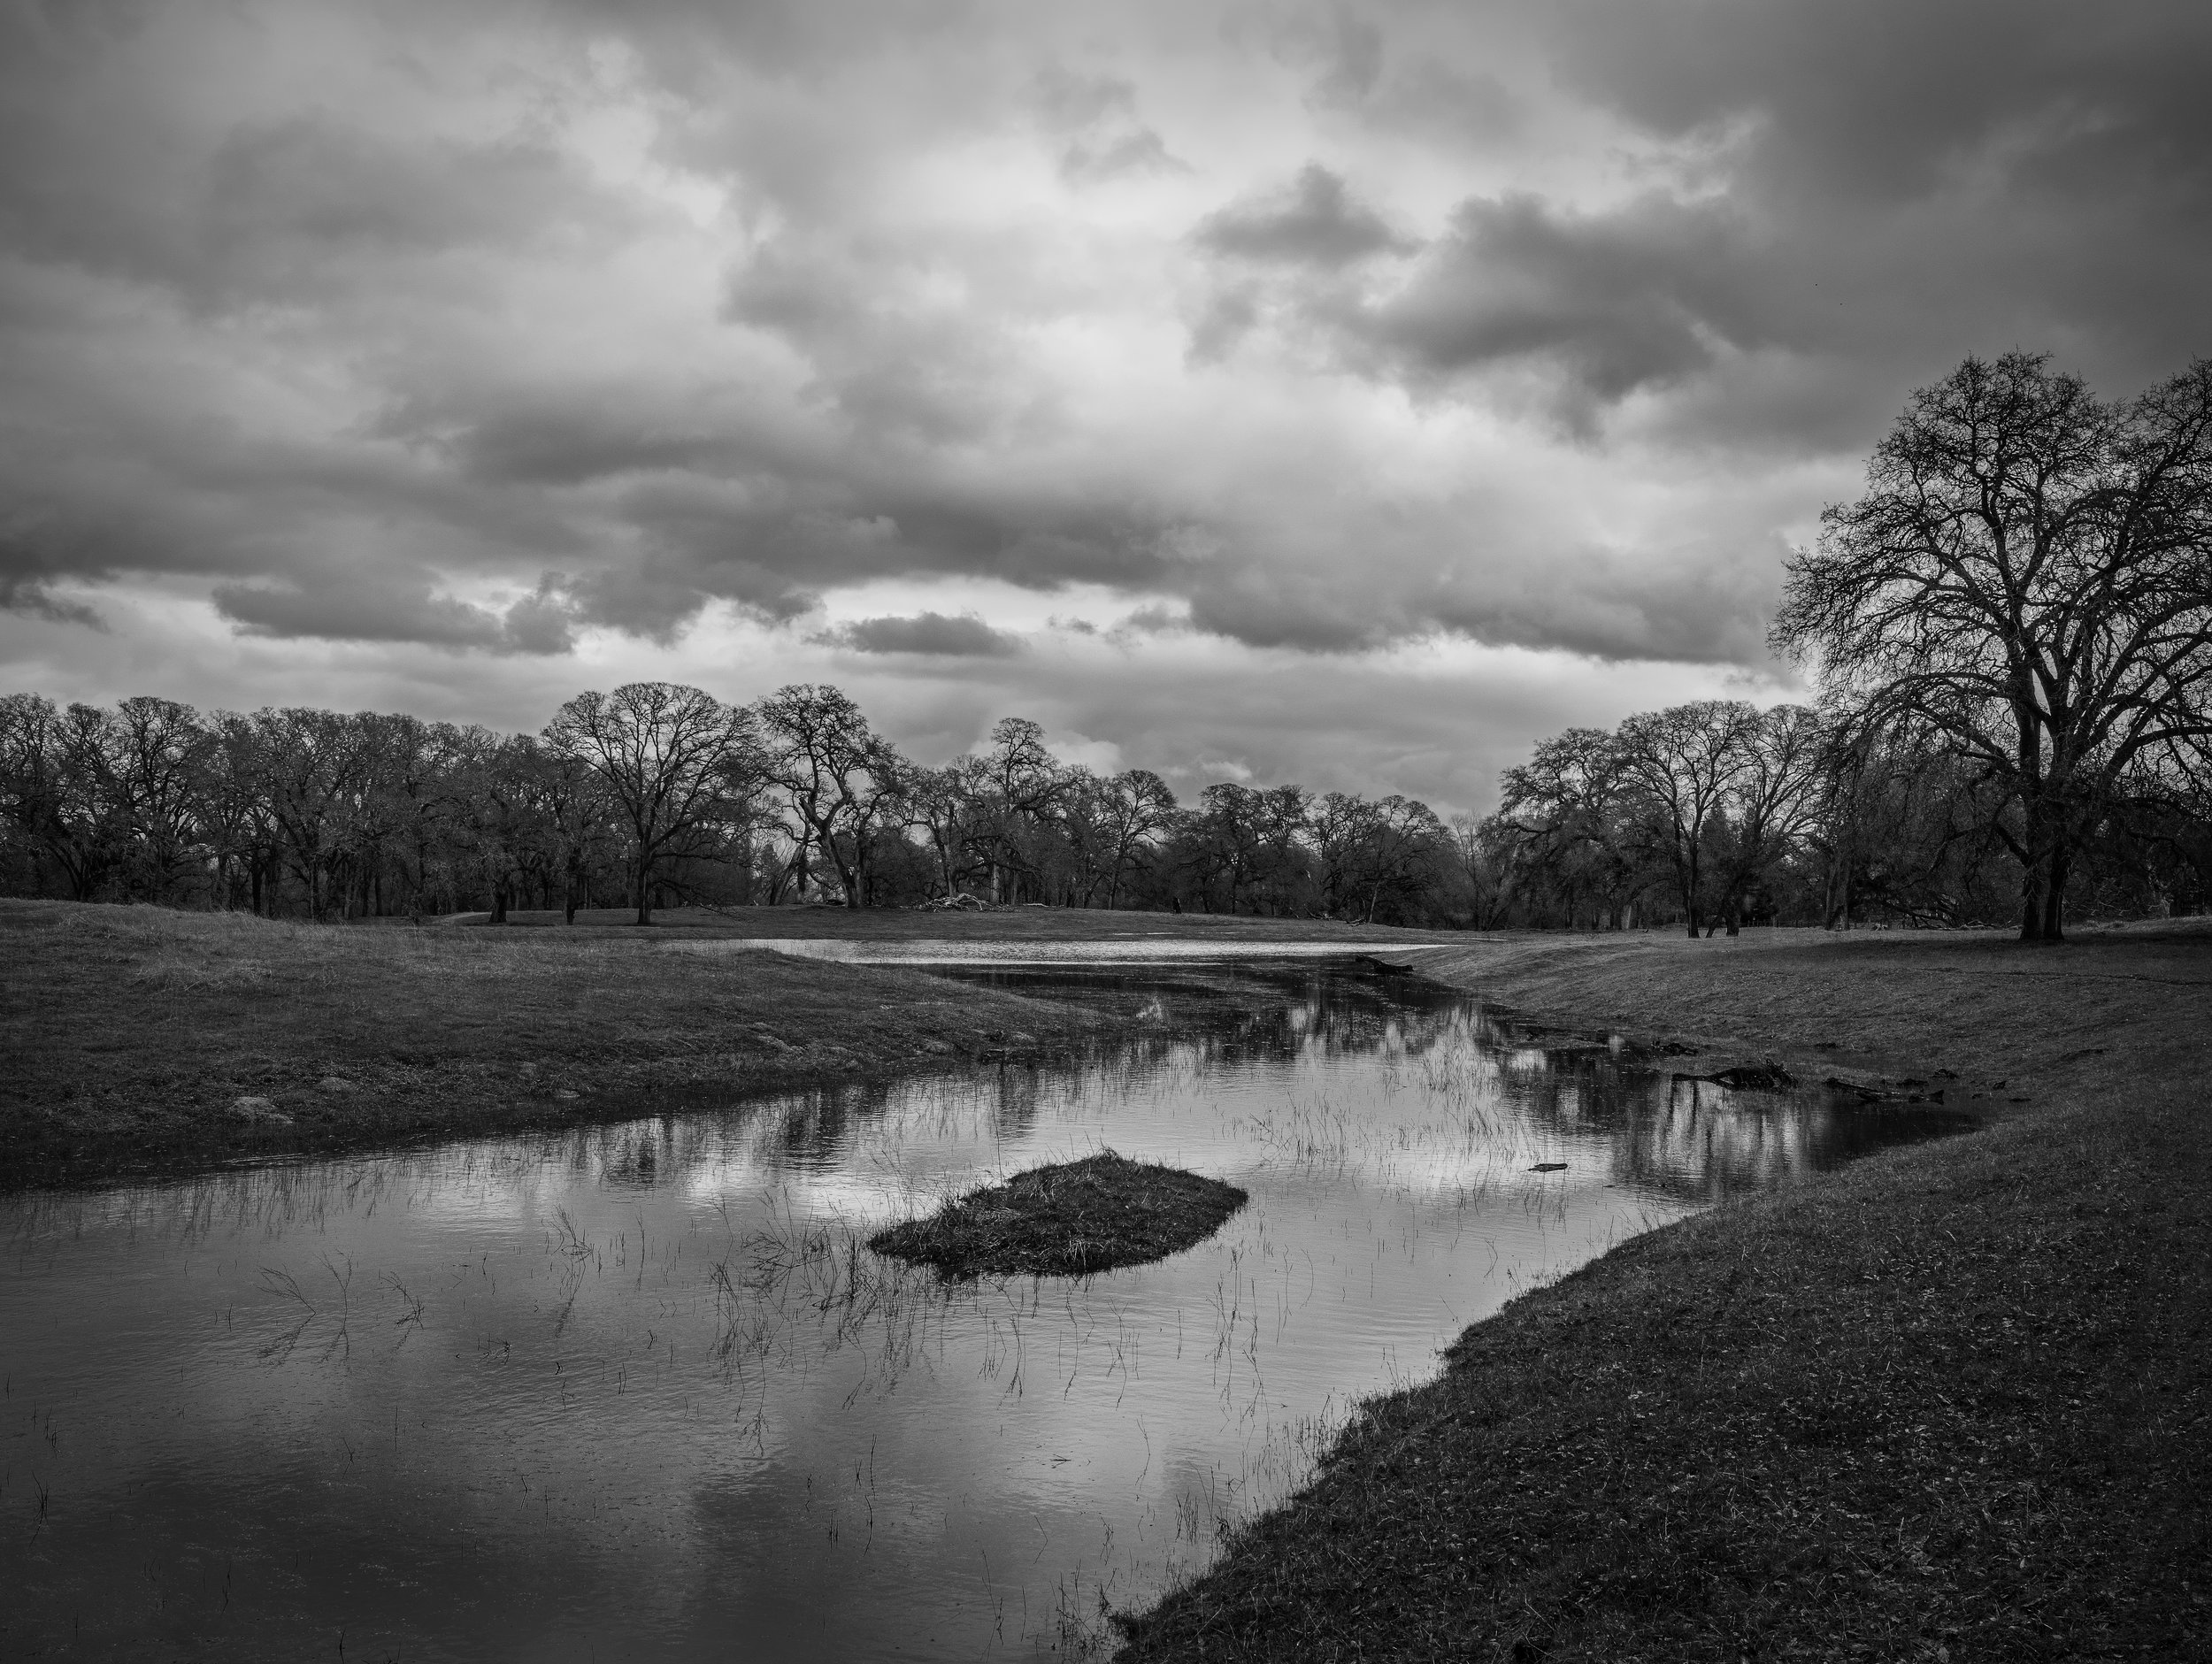 The Wetland at Branch Creek